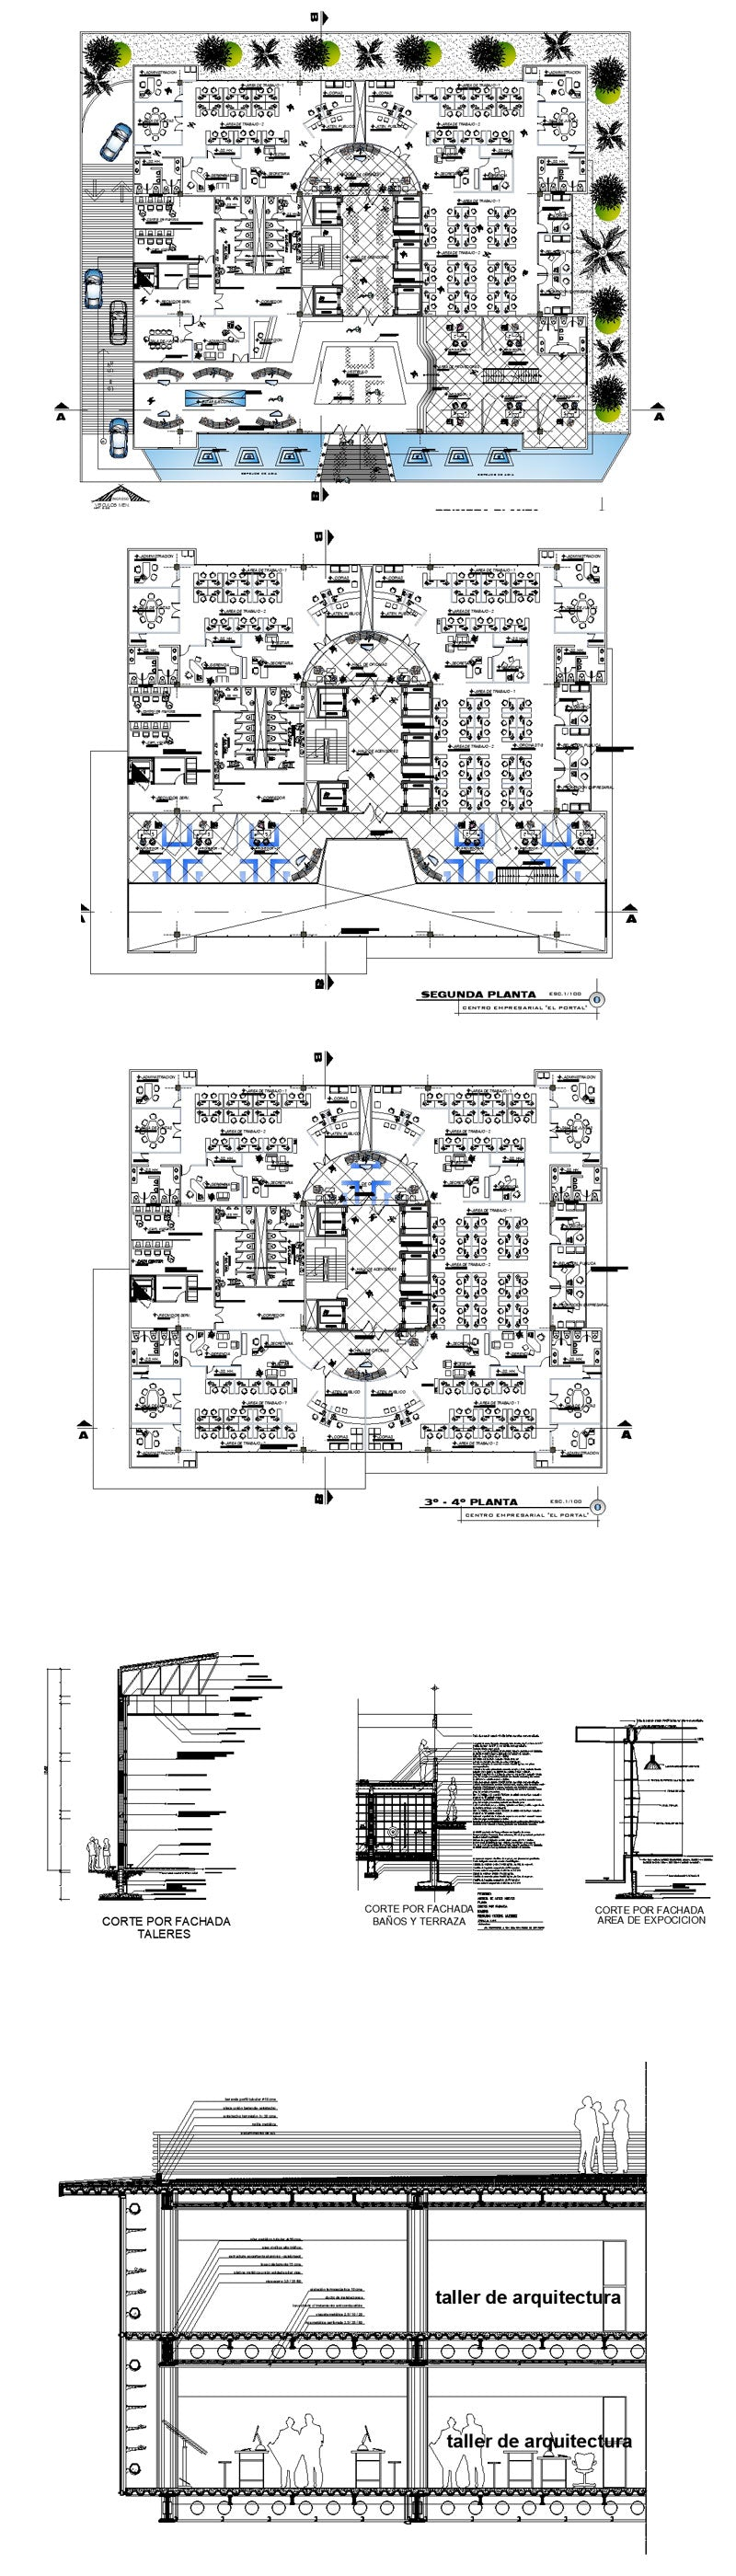 Office Commercial Building Mixed Business Building Cad Design Project V 11 Autocad Blocks Drawings Cad Details Elevation